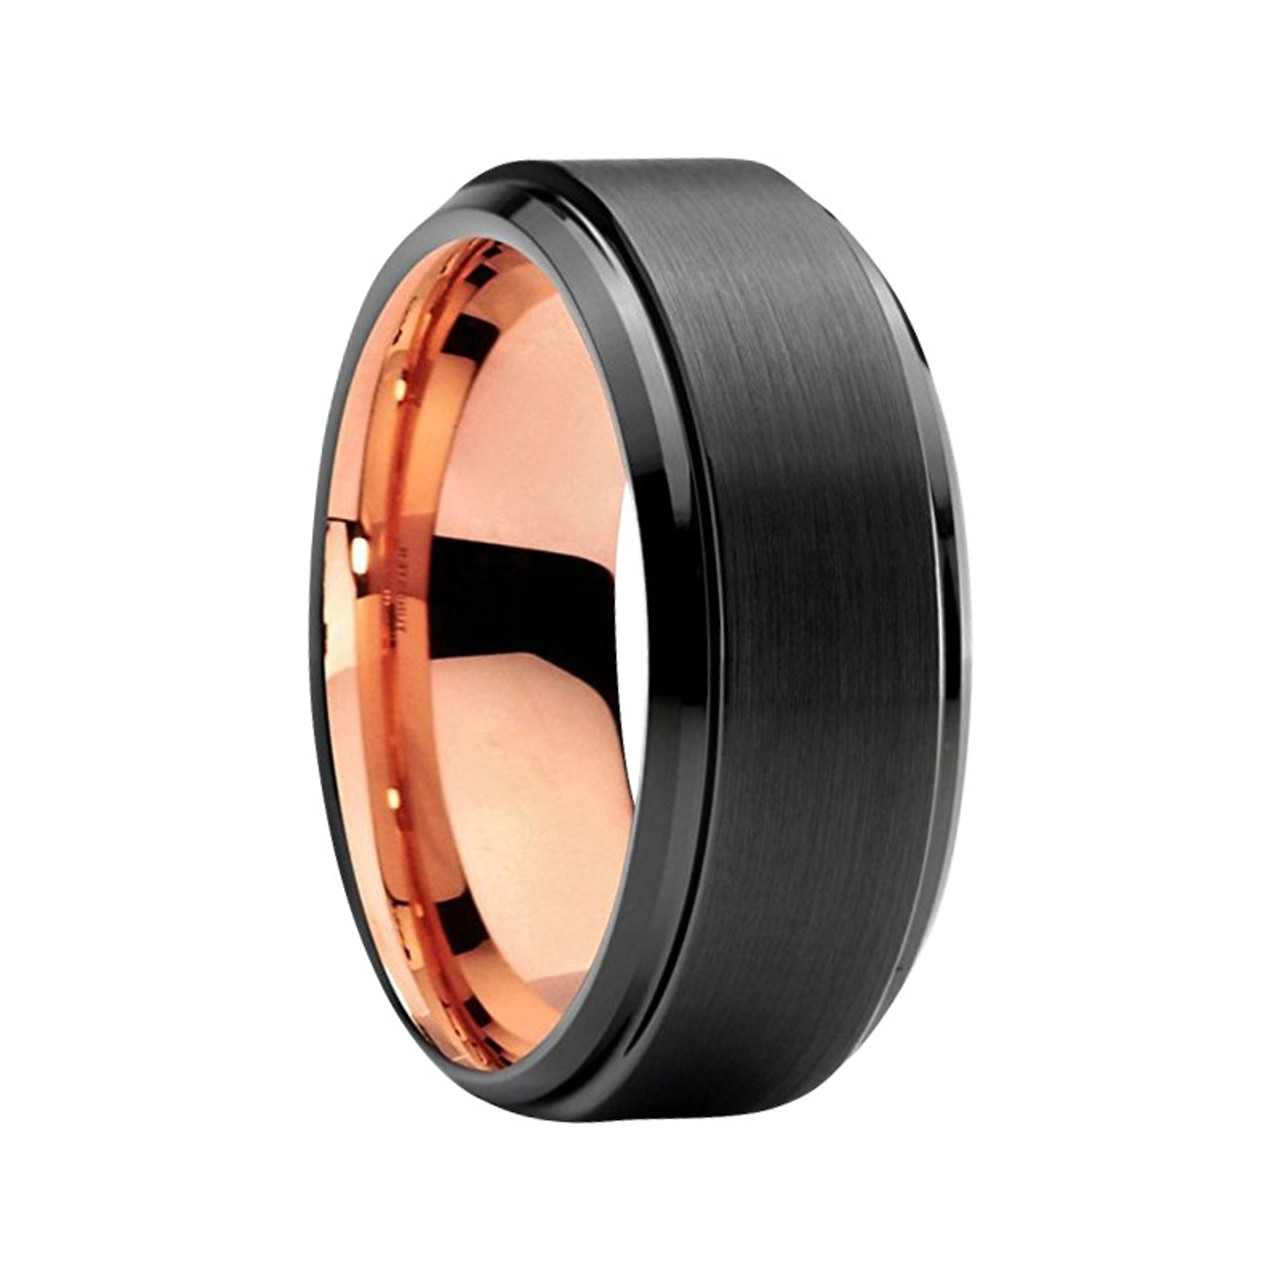 It is a picture of 41 mm Mens Wedding Bands - Black Tungsten, with Rose Gold - J41RBC